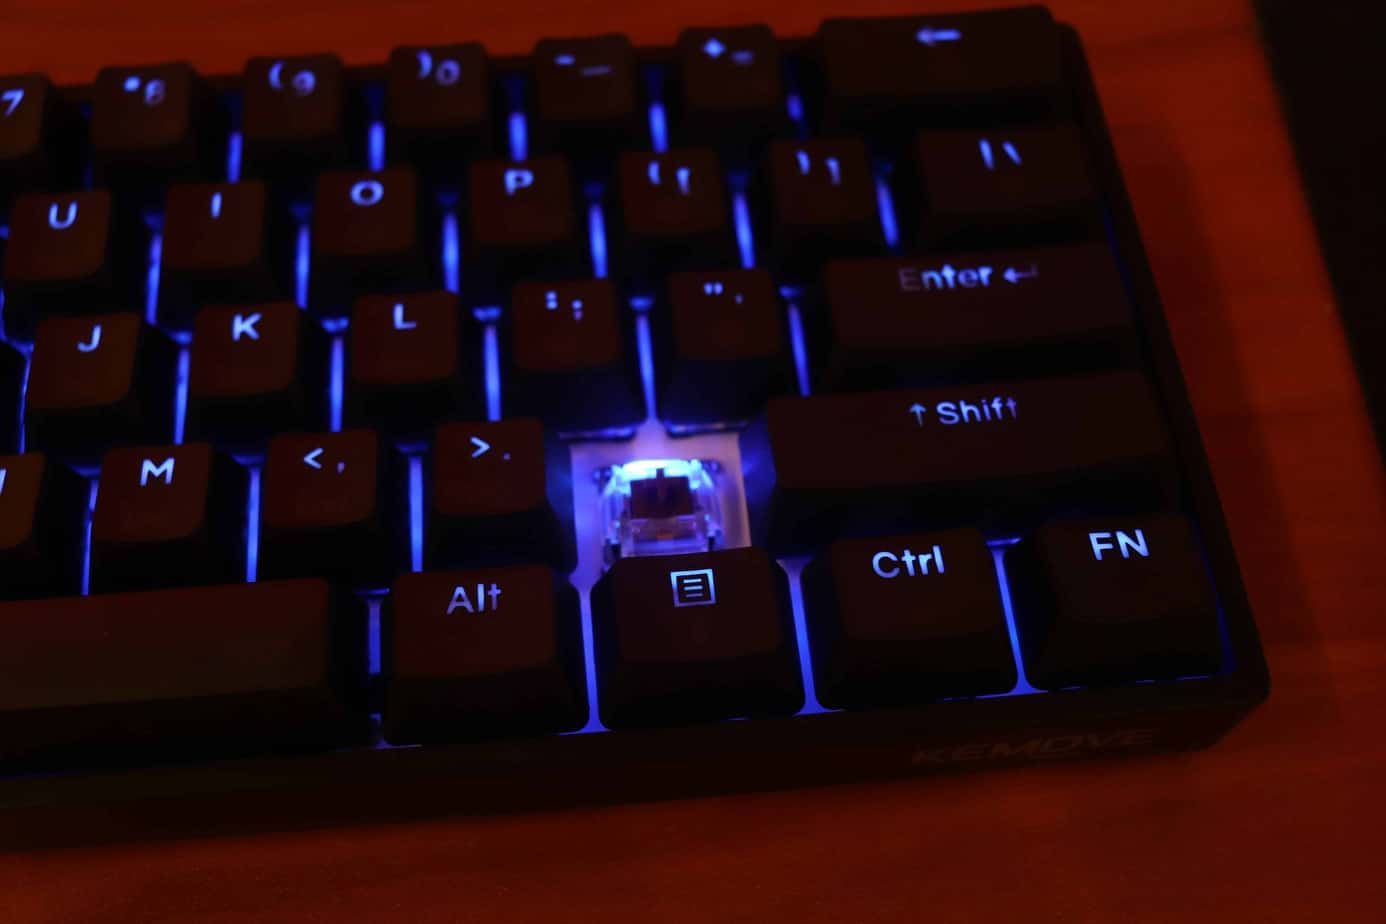 keyboard with one keycap pulled off